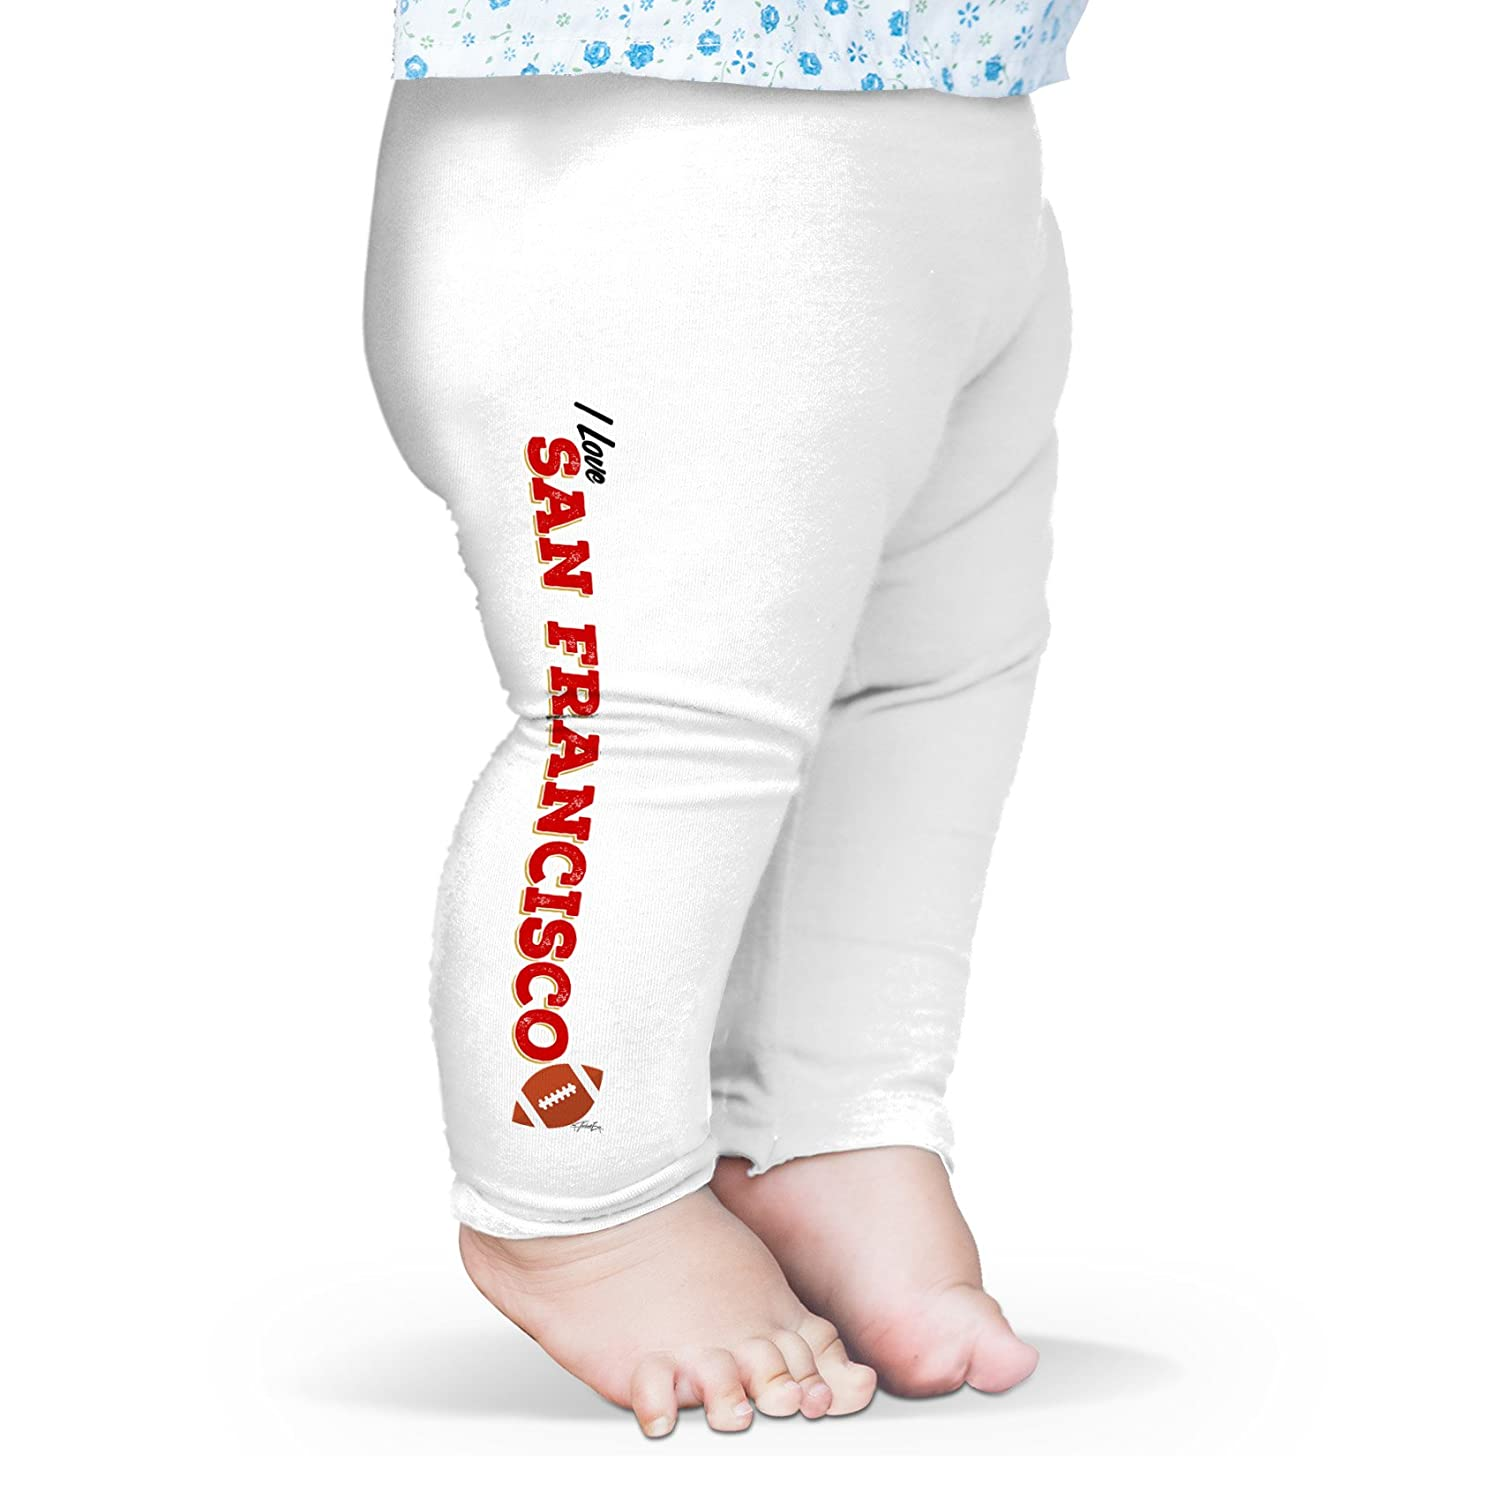 Twisted Envy I Love San Francisco American Football Baby Novelty Leggings Trousers